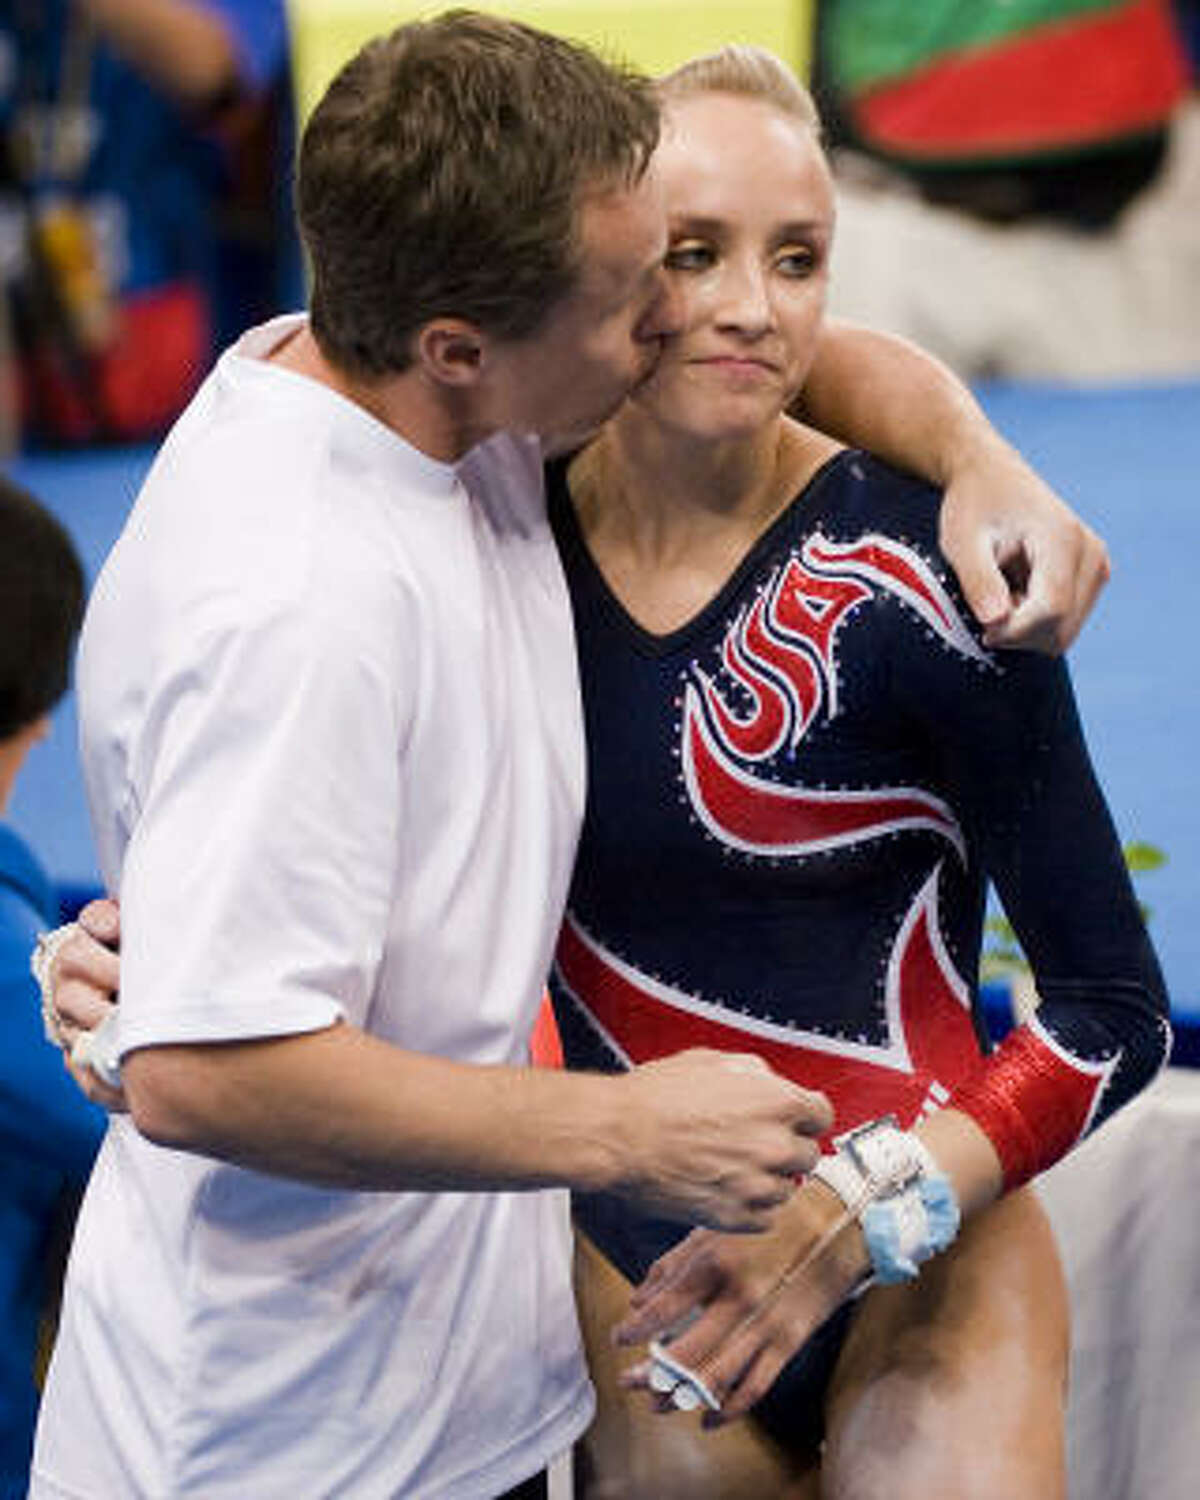 Father, coach and former Olympian himself Valeri Liukin consoles daughter Nastia after the final.